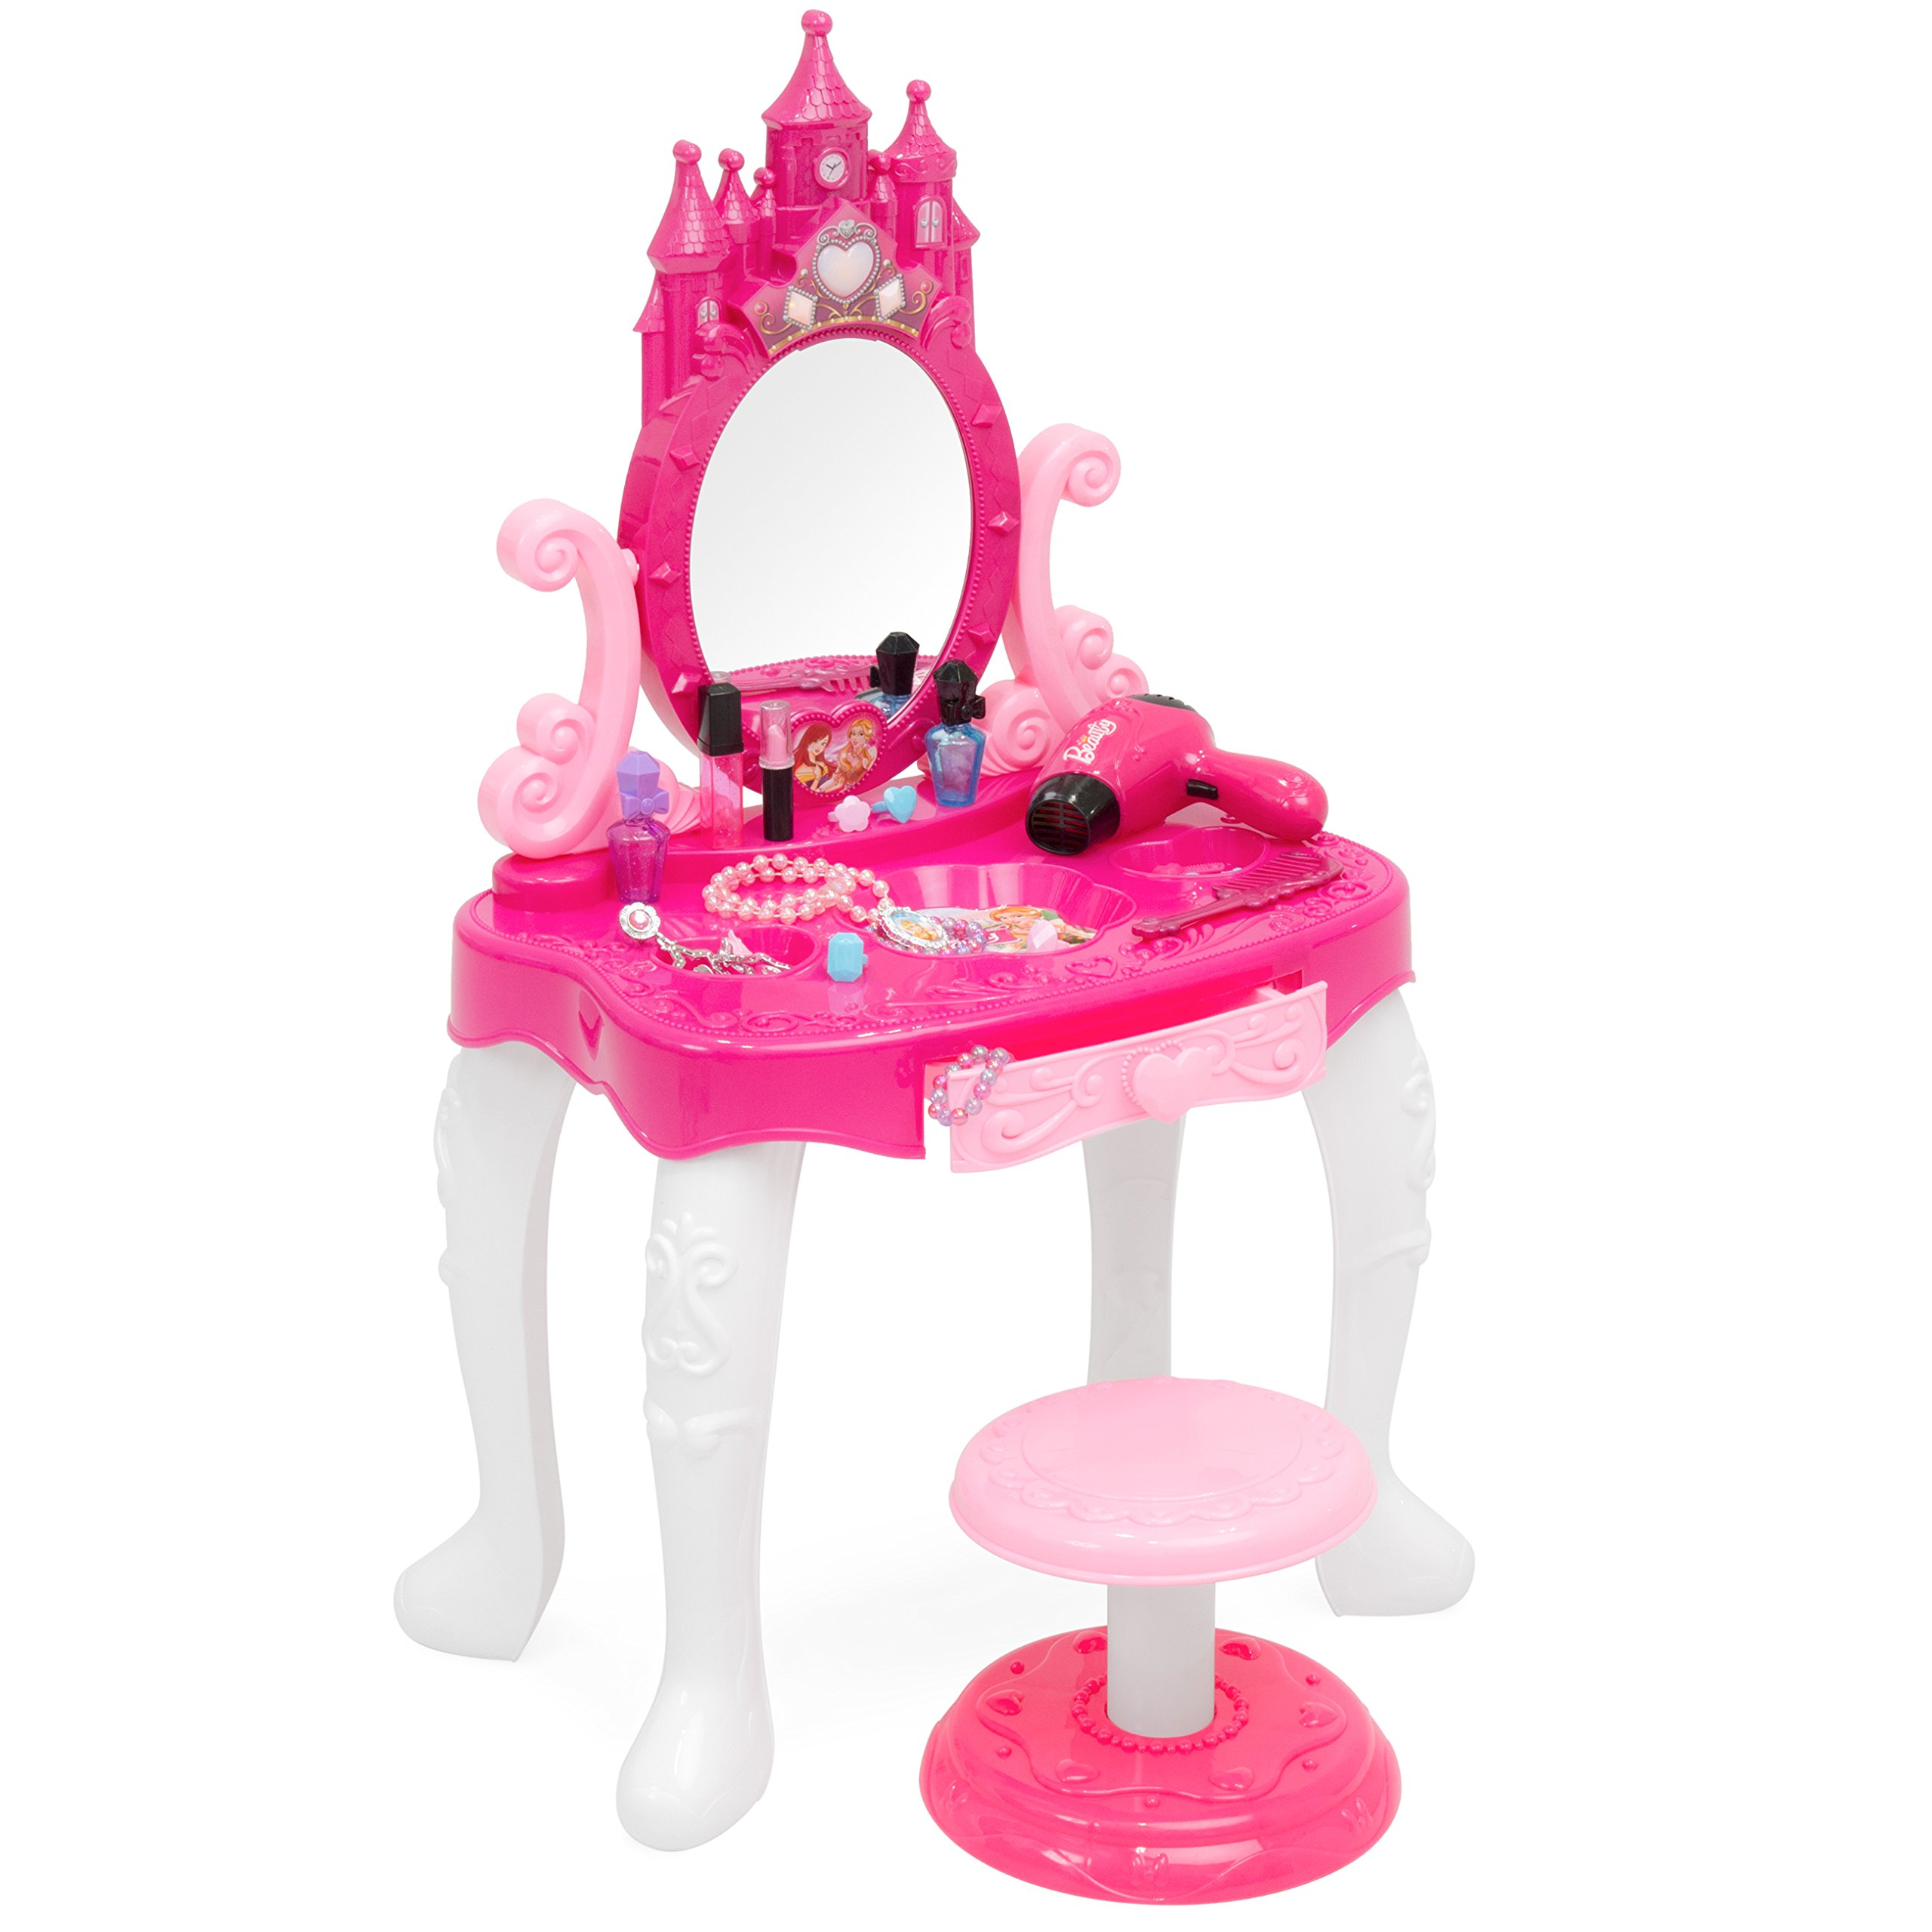 Best Choice Products Kids 14-Piece Vanity Playset w/ Accessories, Makeup, Hairdryer, Jewelry, Pink by Best Choice Products